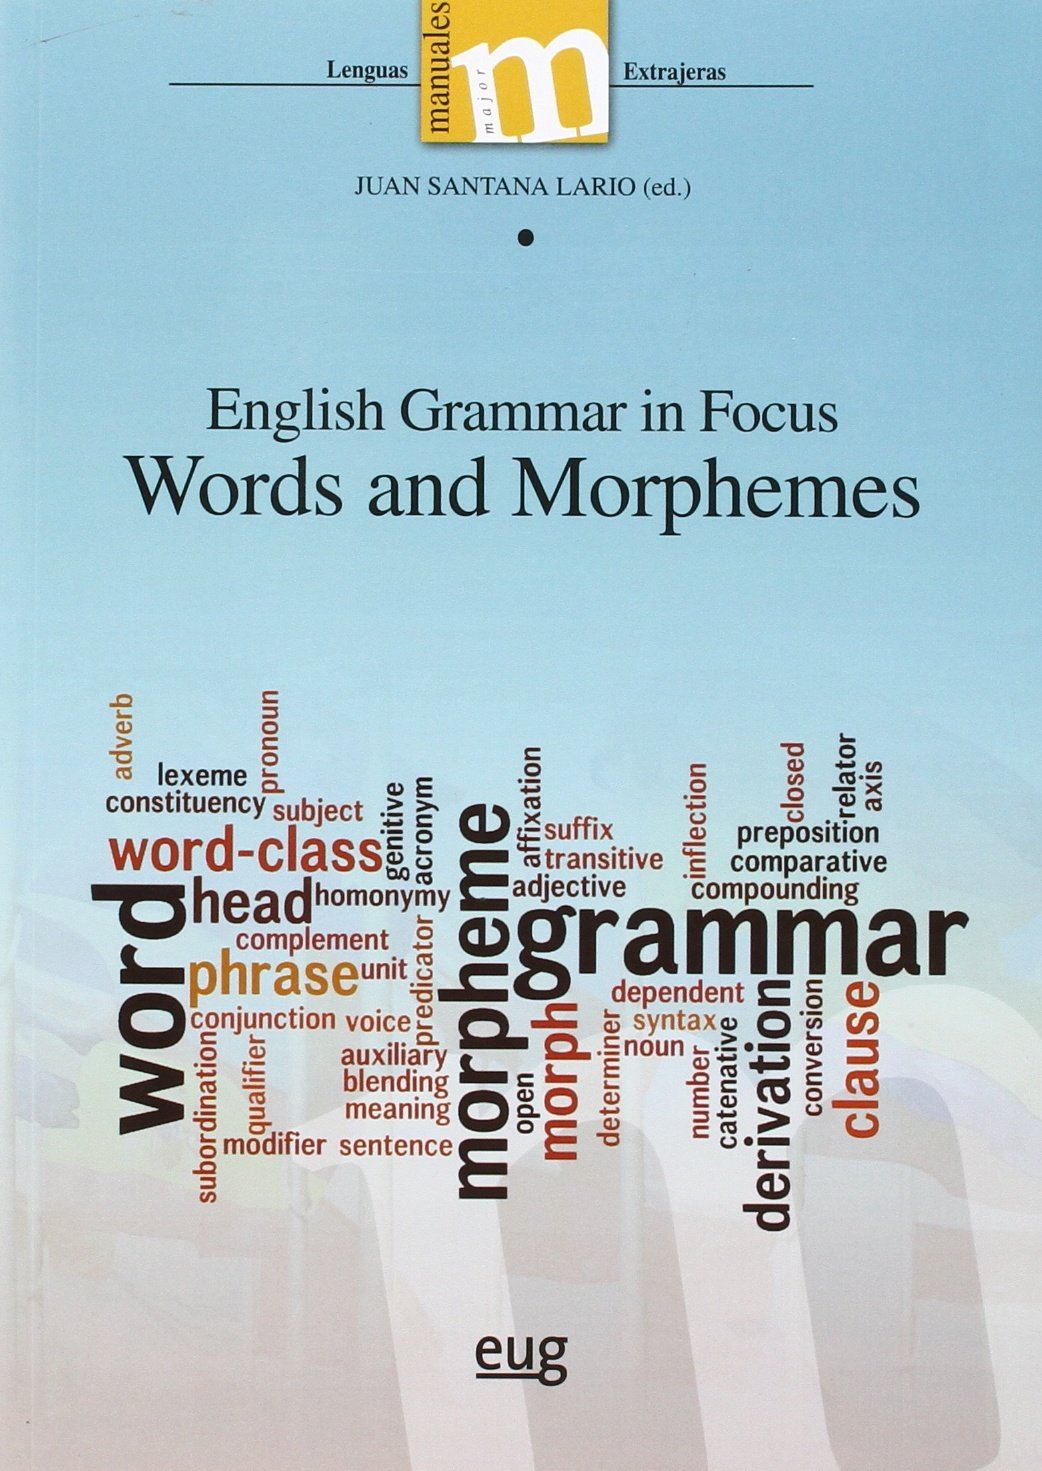 English Grammar in Focus: Words and Morphemes